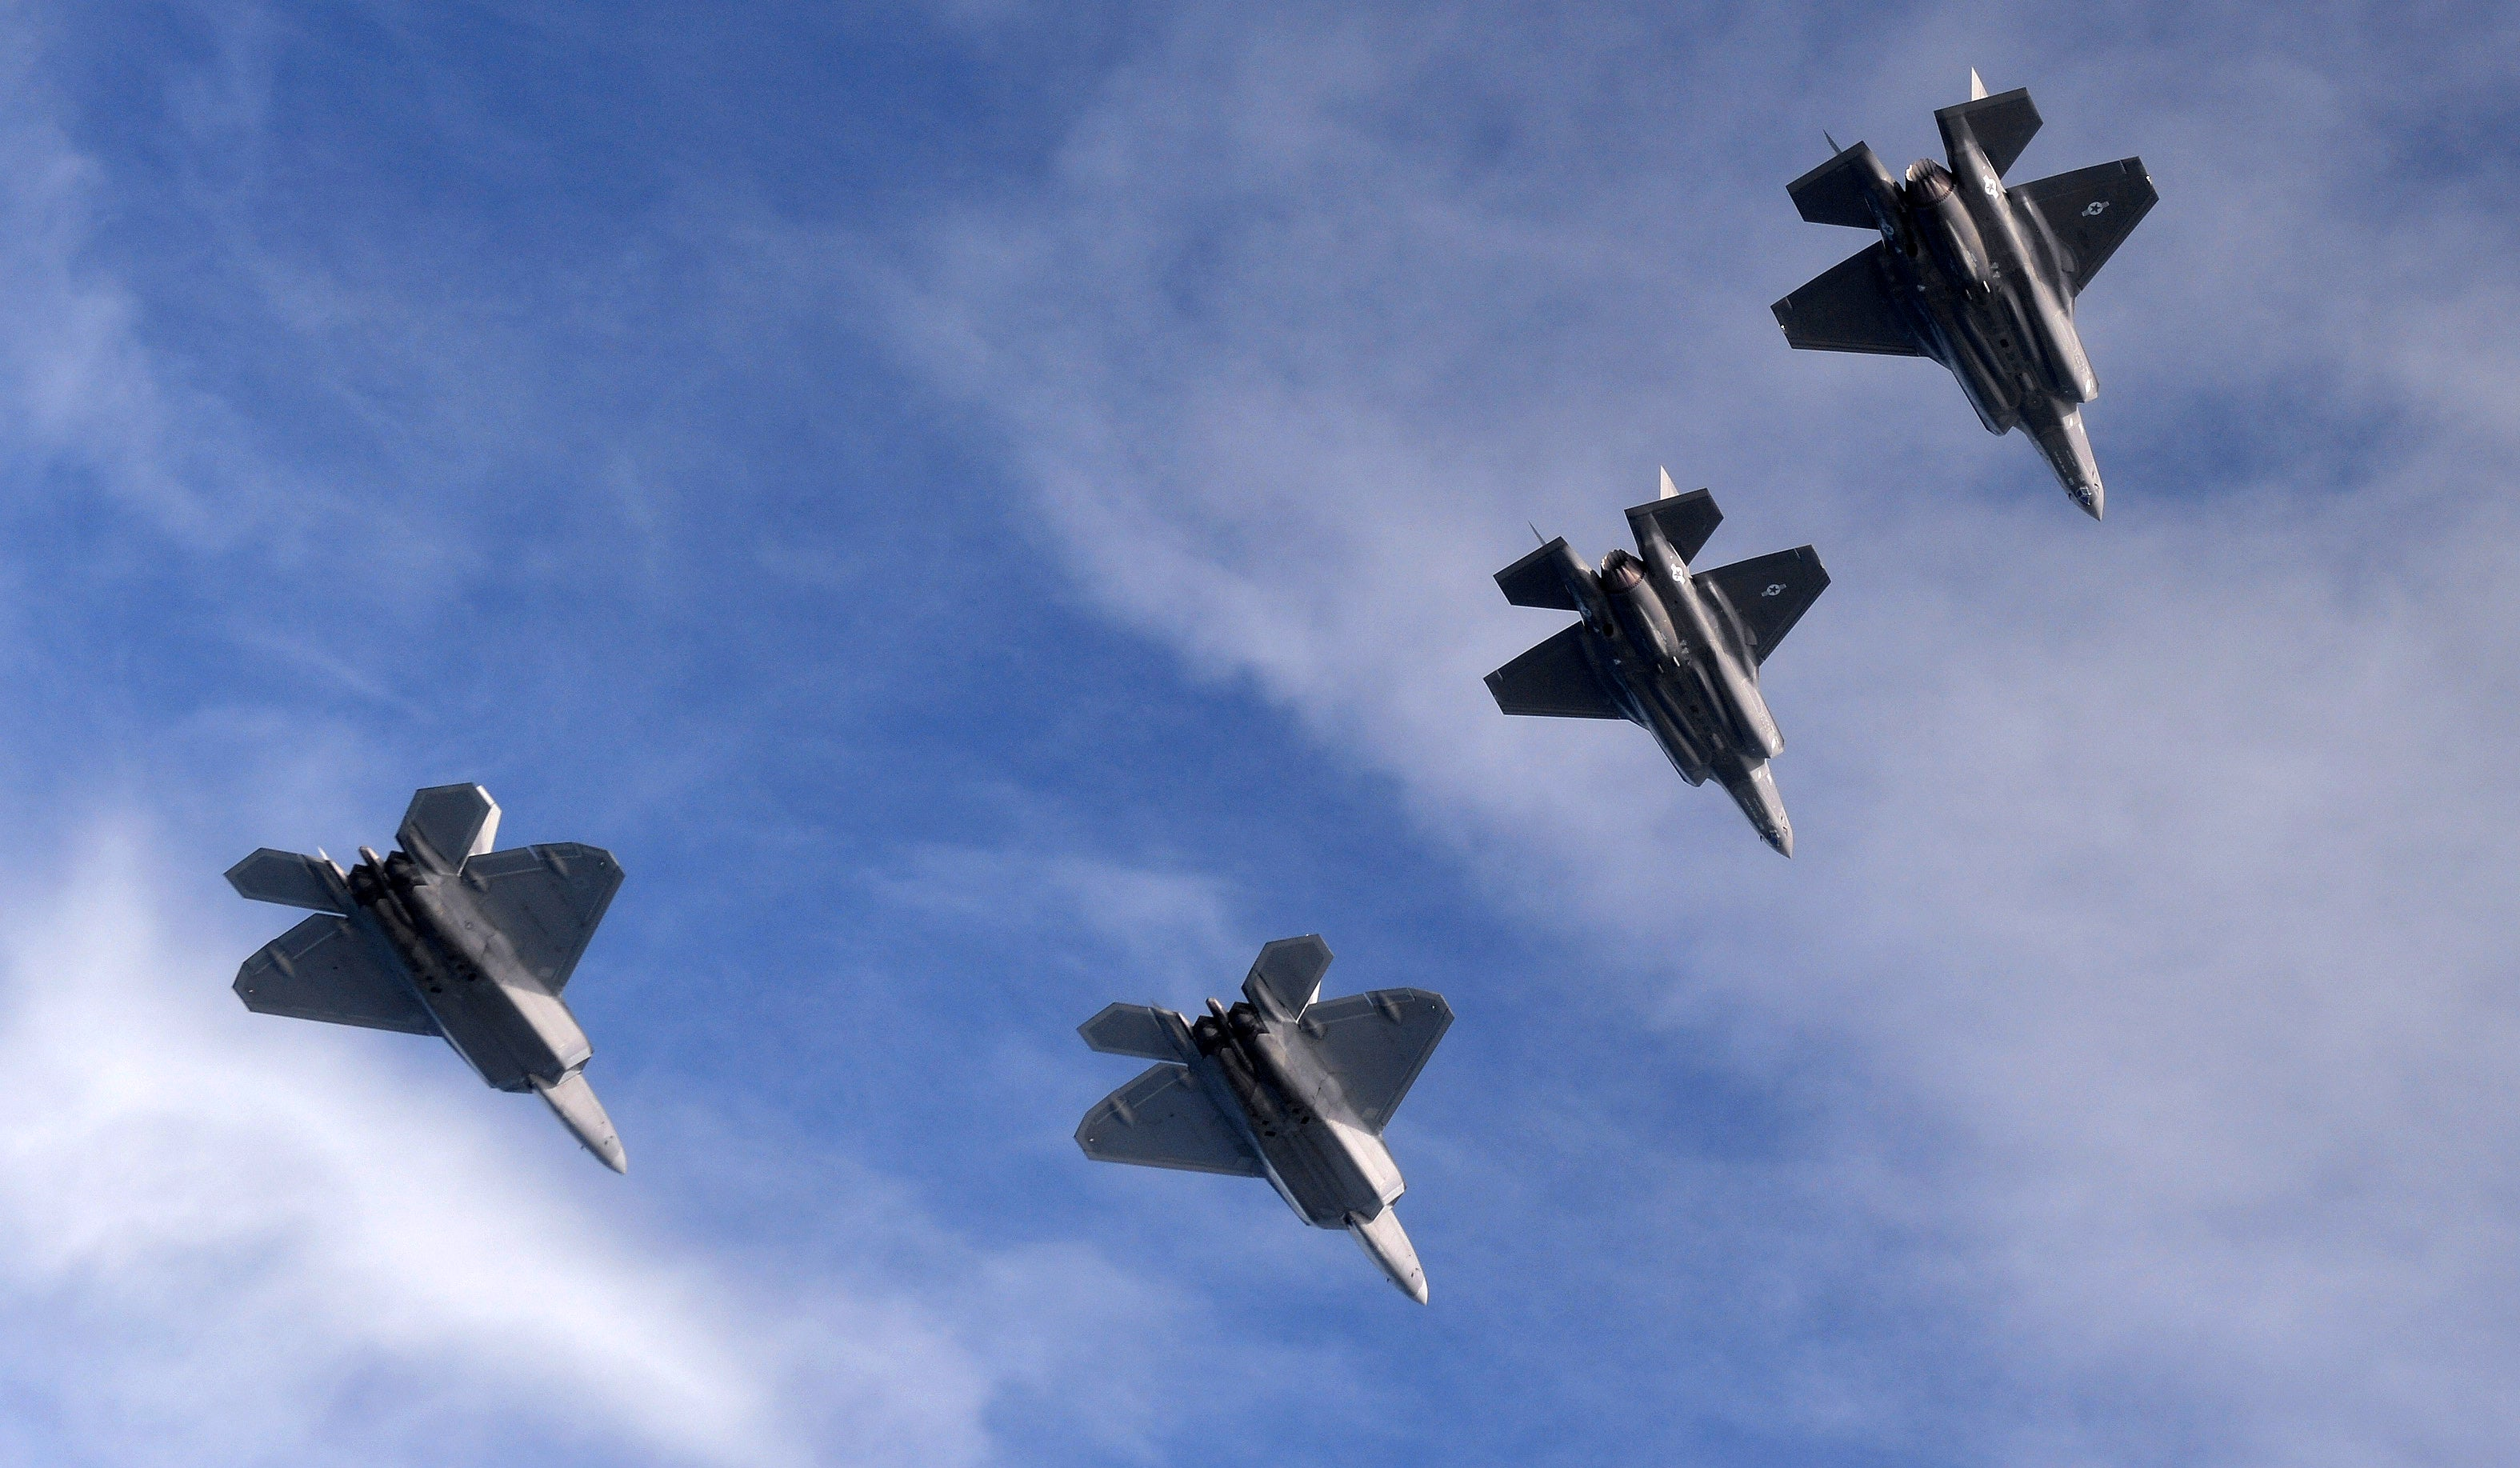 Cool photos of F-22s and F-35s flying together for the first time